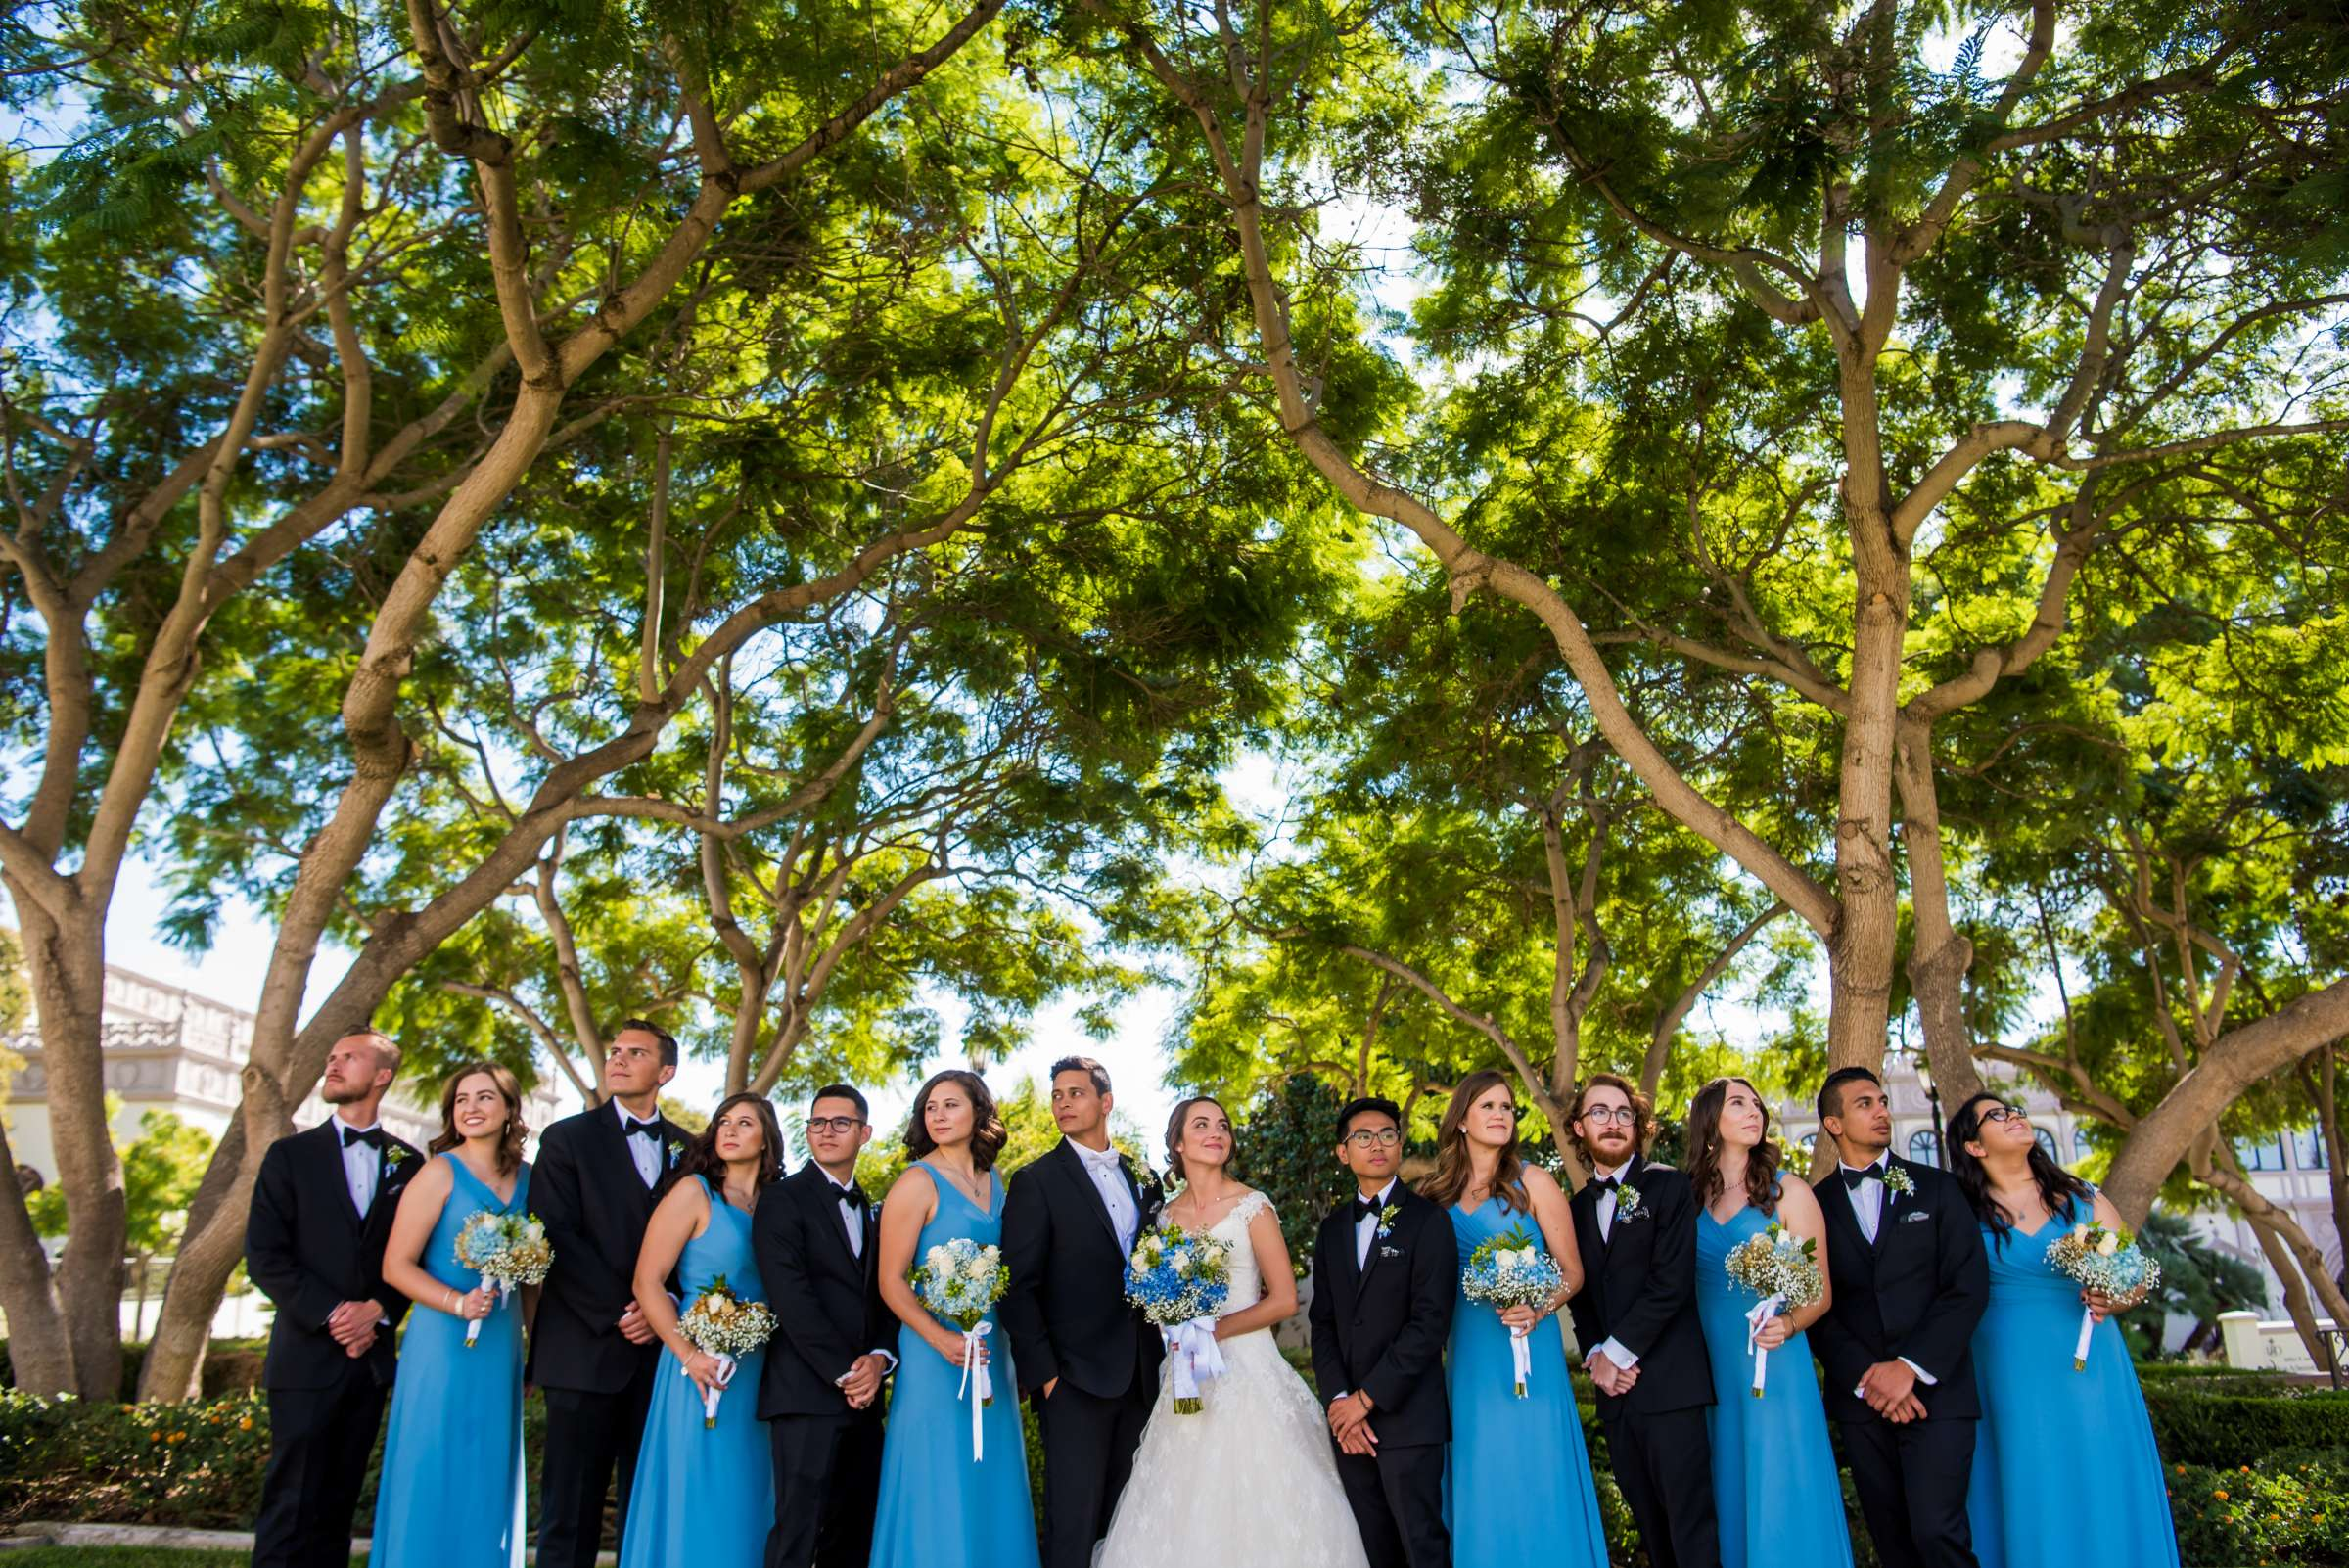 The Immaculata Wedding, Arianna and Jonah Wedding Photo #84 by True Photography